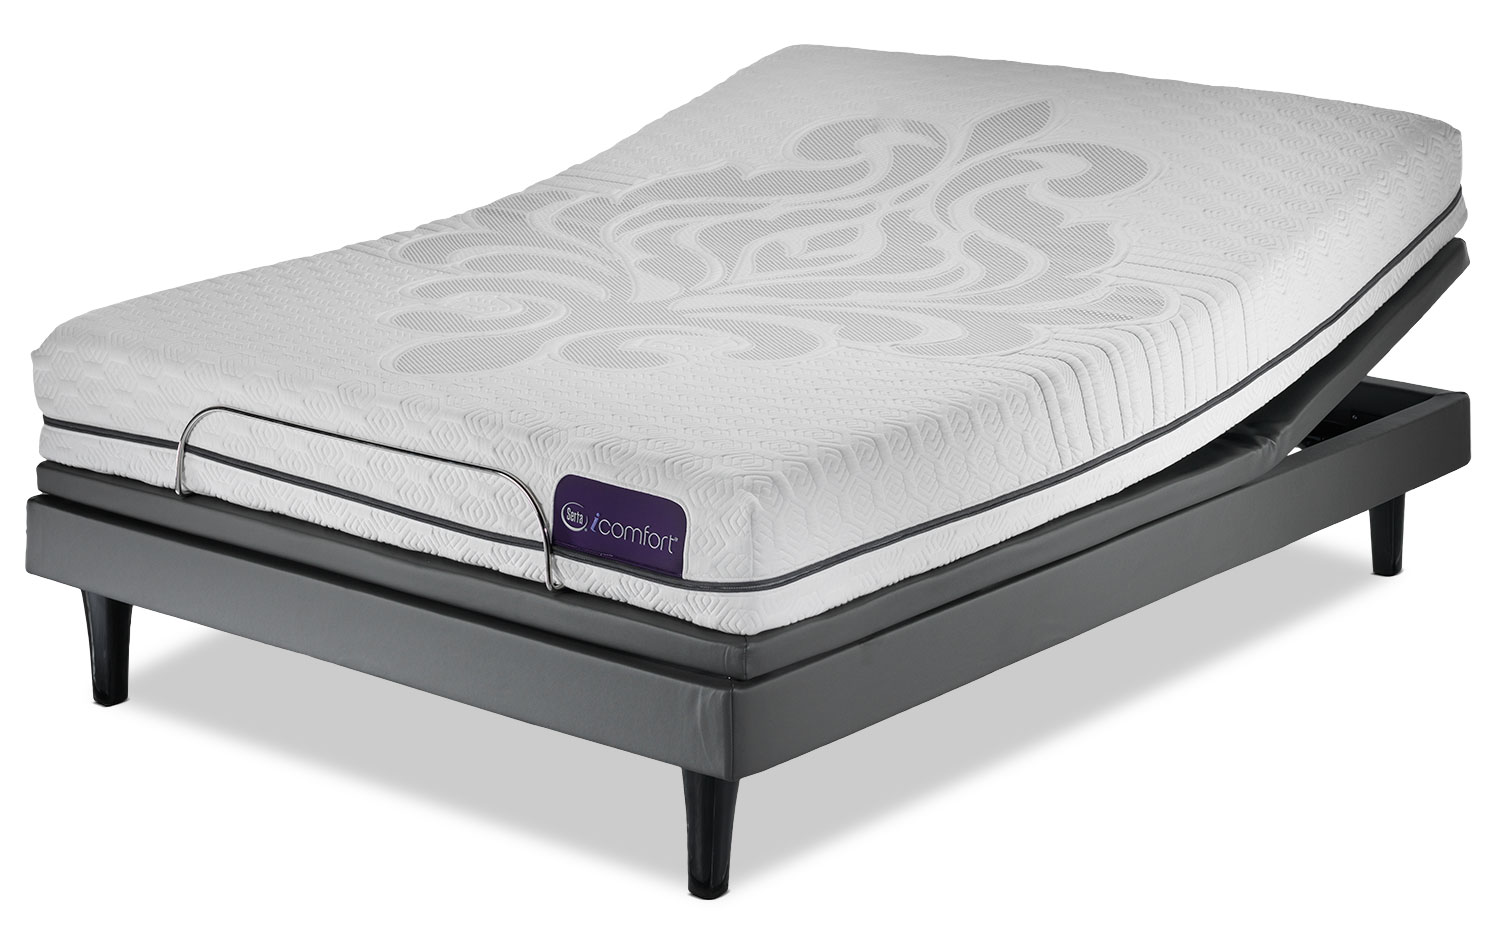 Mattresses and Bedding - Serta iComfort Eco Levity Firm Twin XL Mattress and Motion Perfect III Complete Adjustable Base